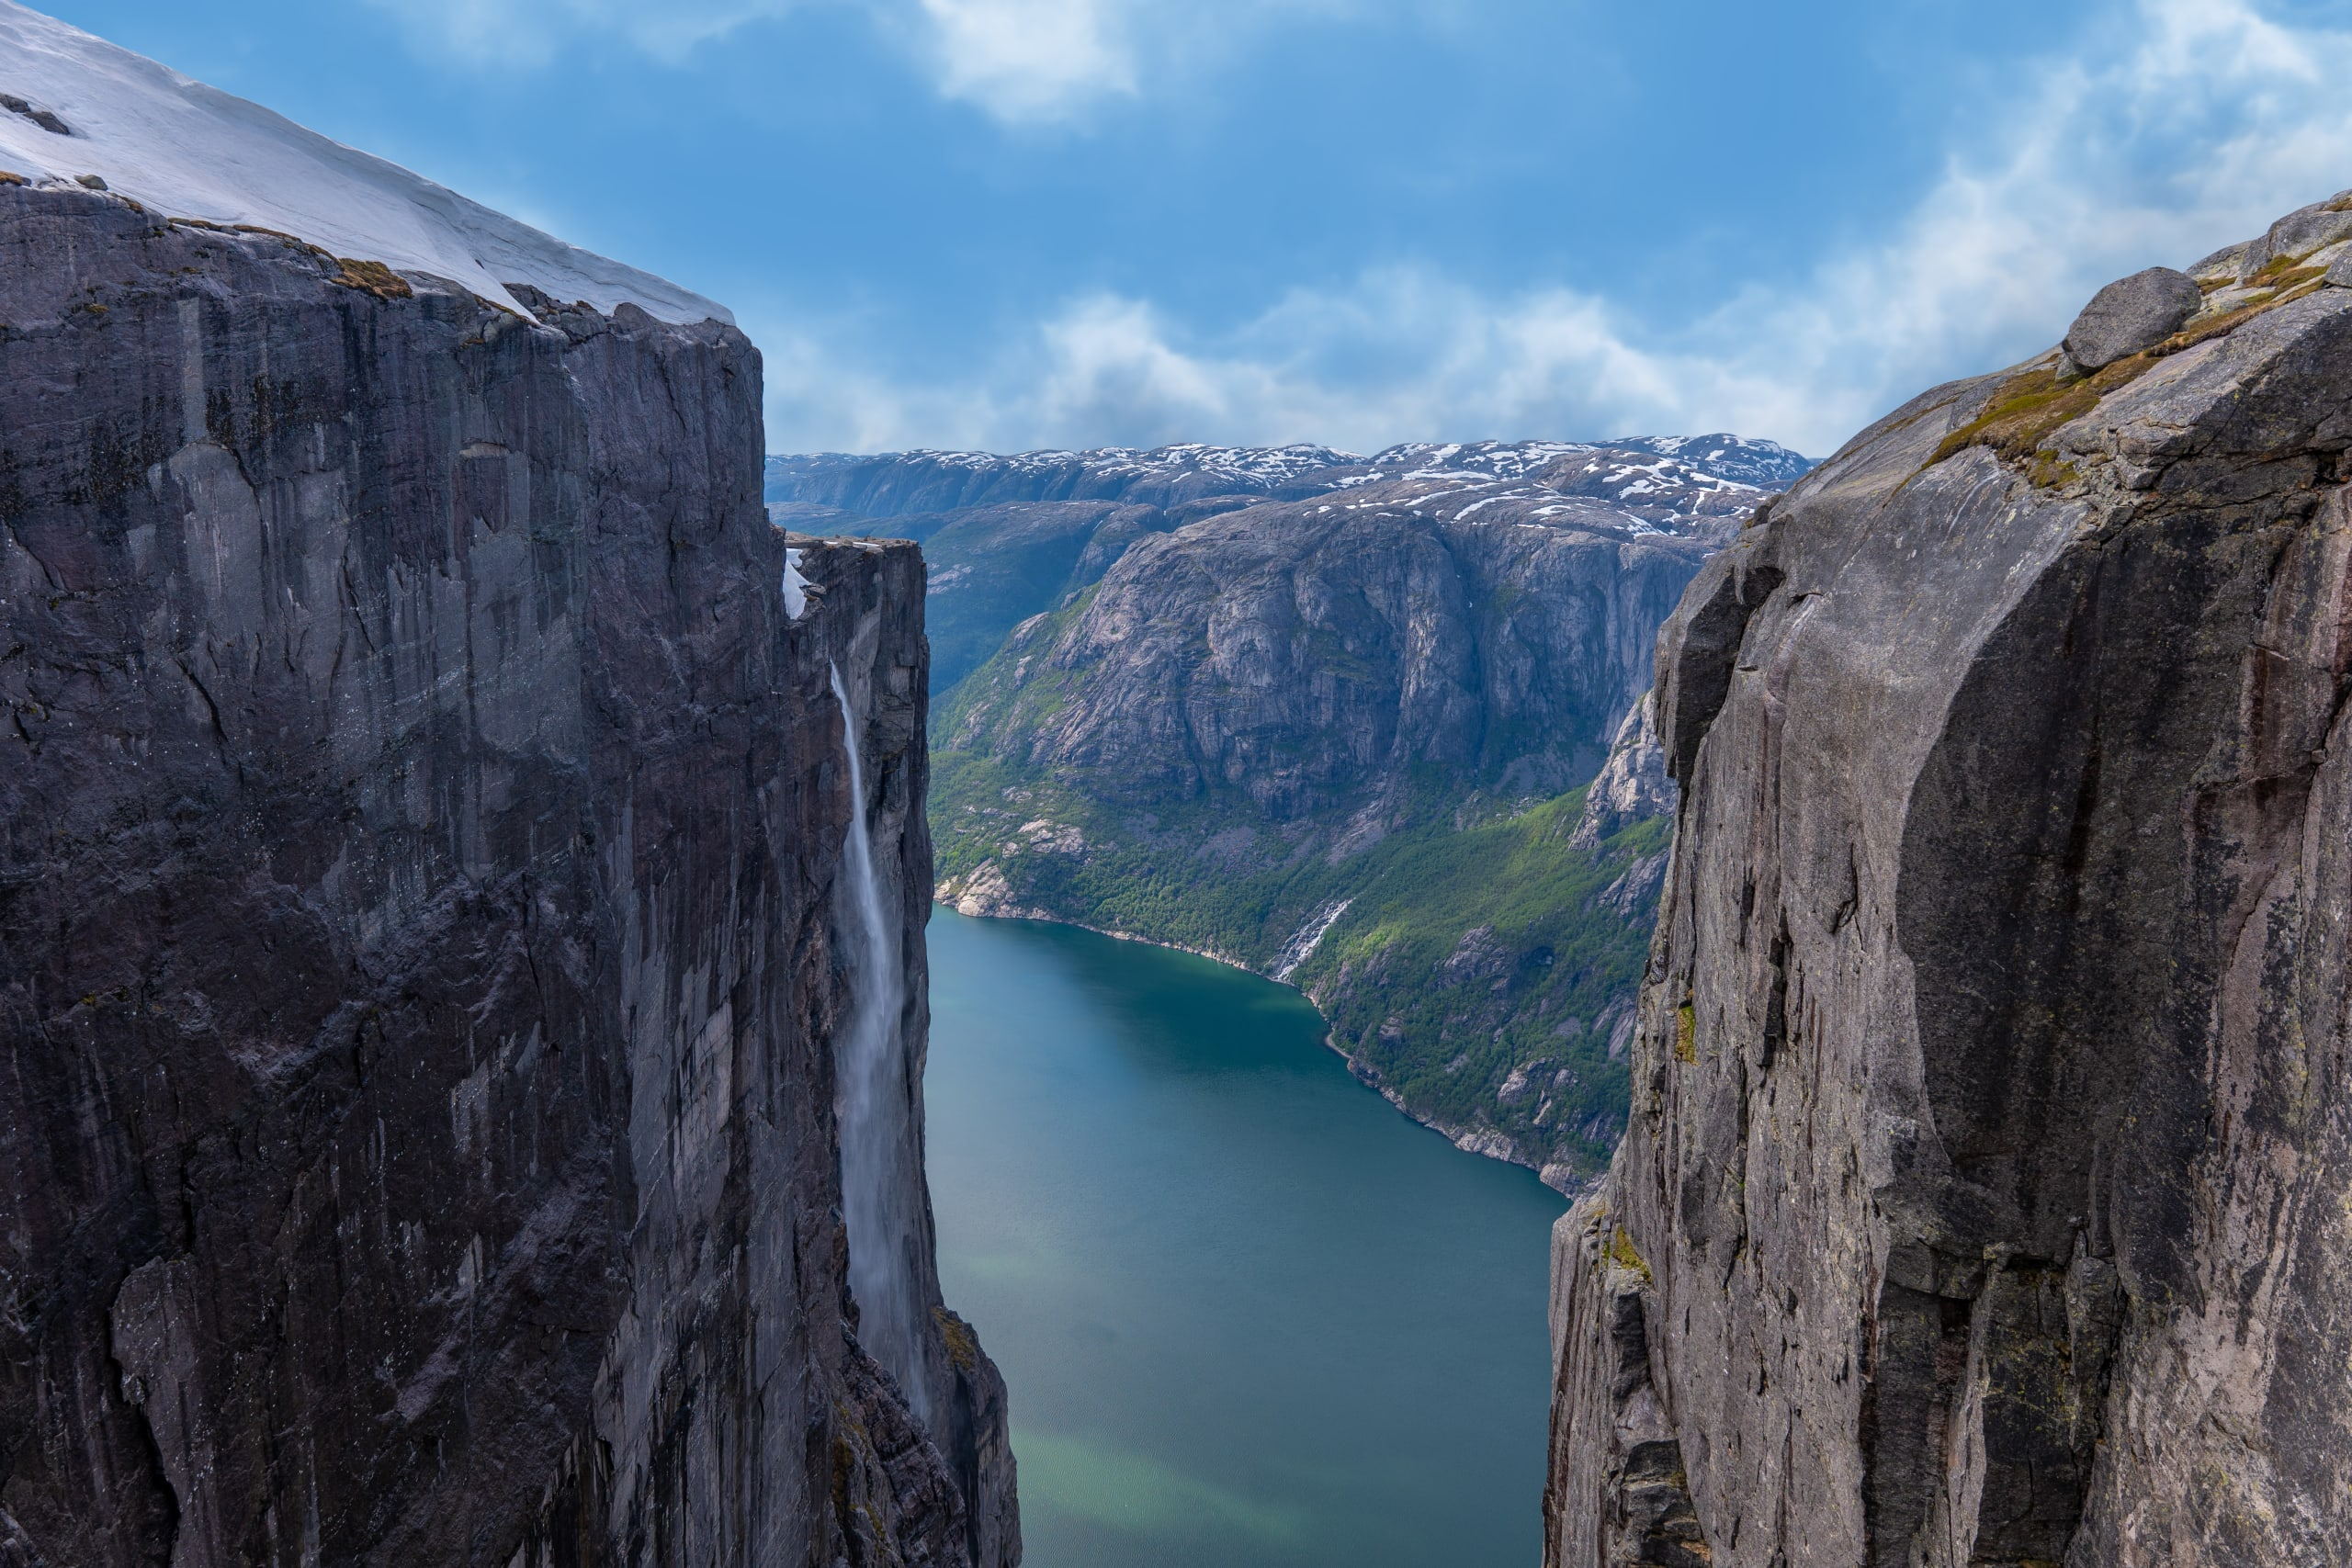 The Lysefjord from the plateau of Kjerag